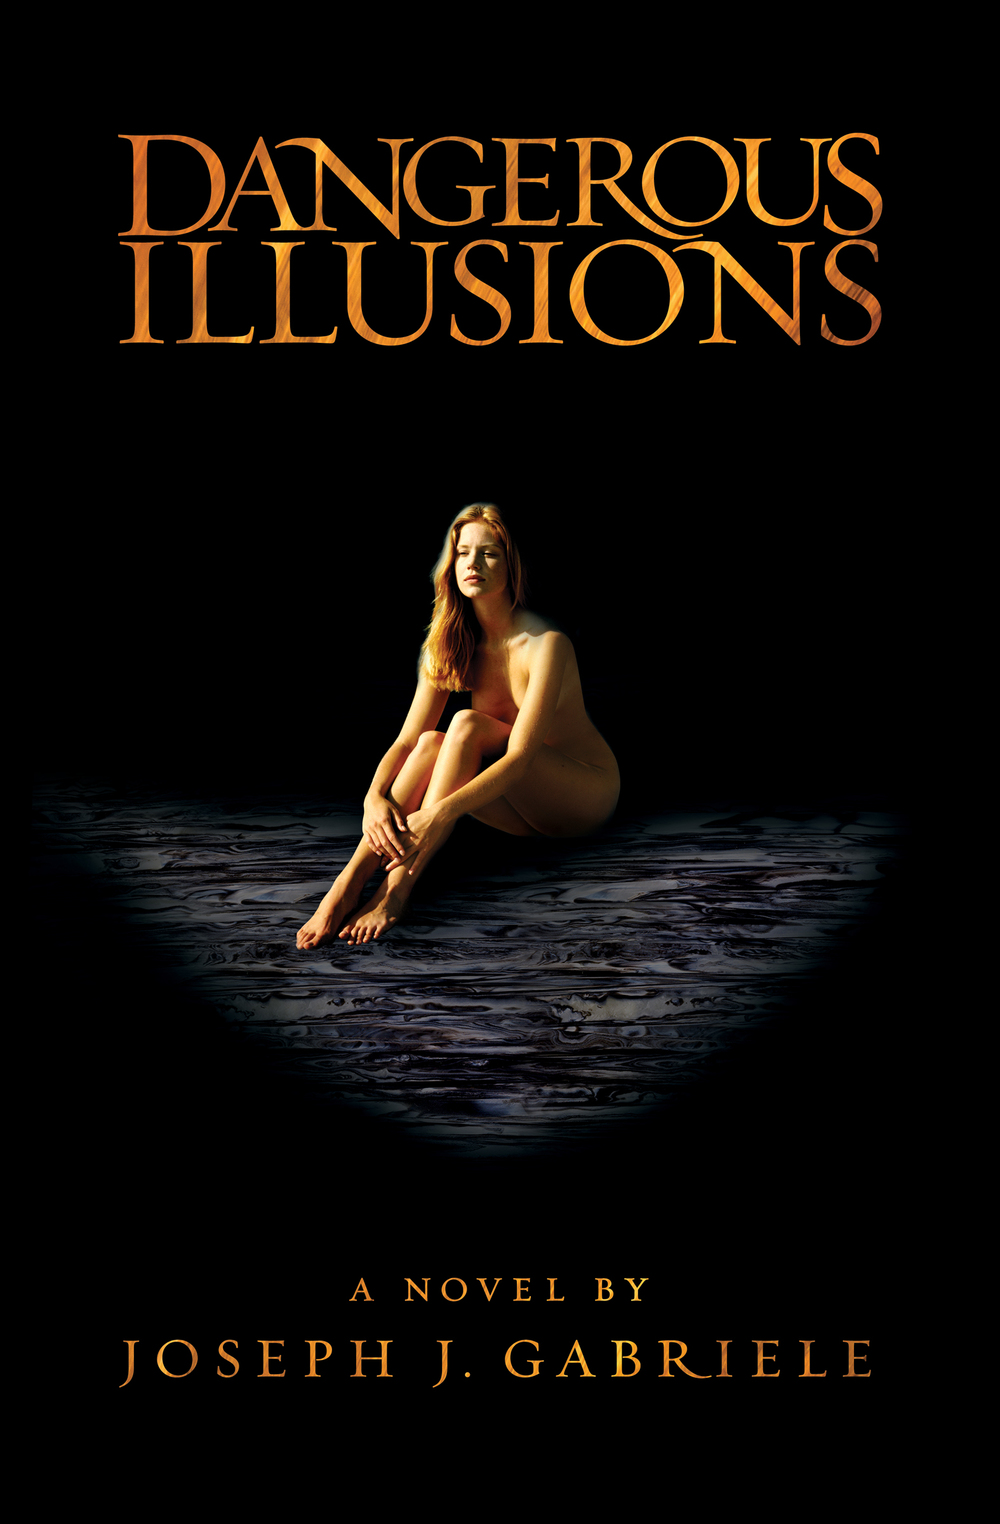 Dangerous Illusions  Book Cover:  ISBN 9781940521640 (Hardcover)  ISBN 9781940521633 (Ebook)